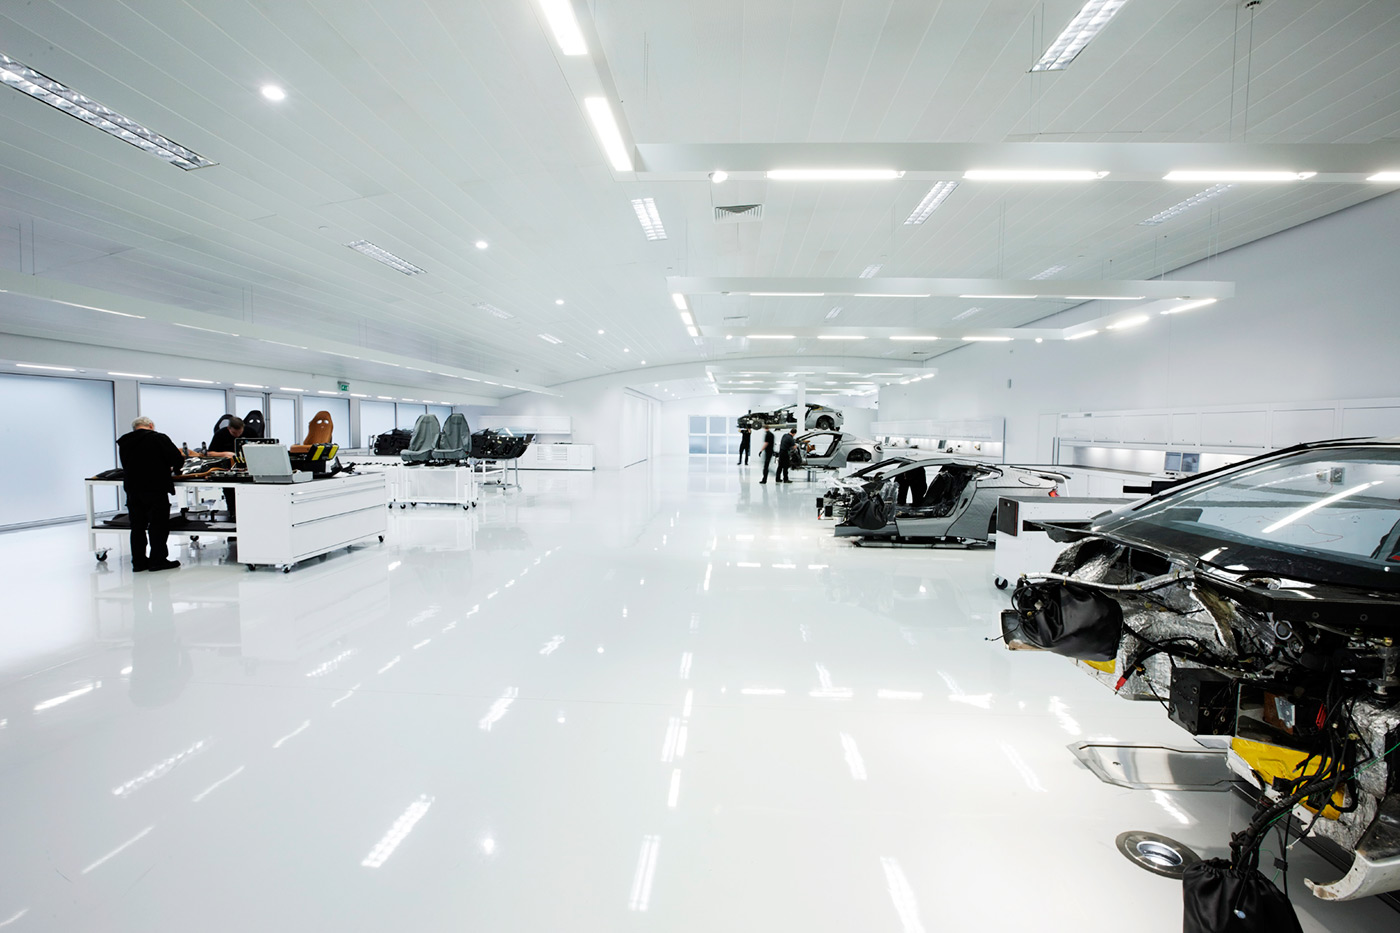 <p>The immaculate special production facility at Aston Martin, here building the first batch of One-77 supercars.</p>